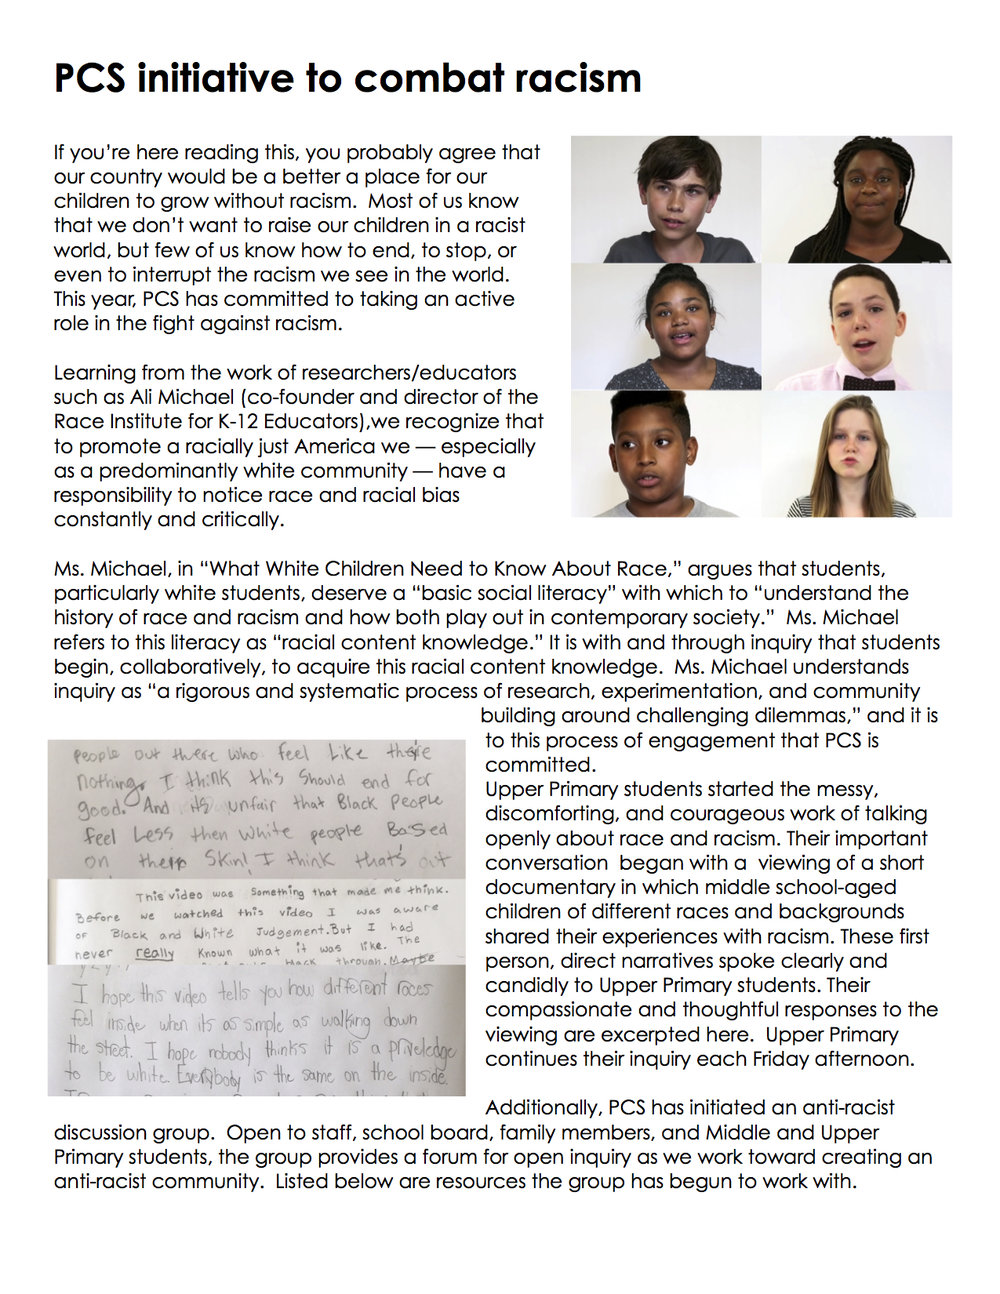 racism document JPG.jpg